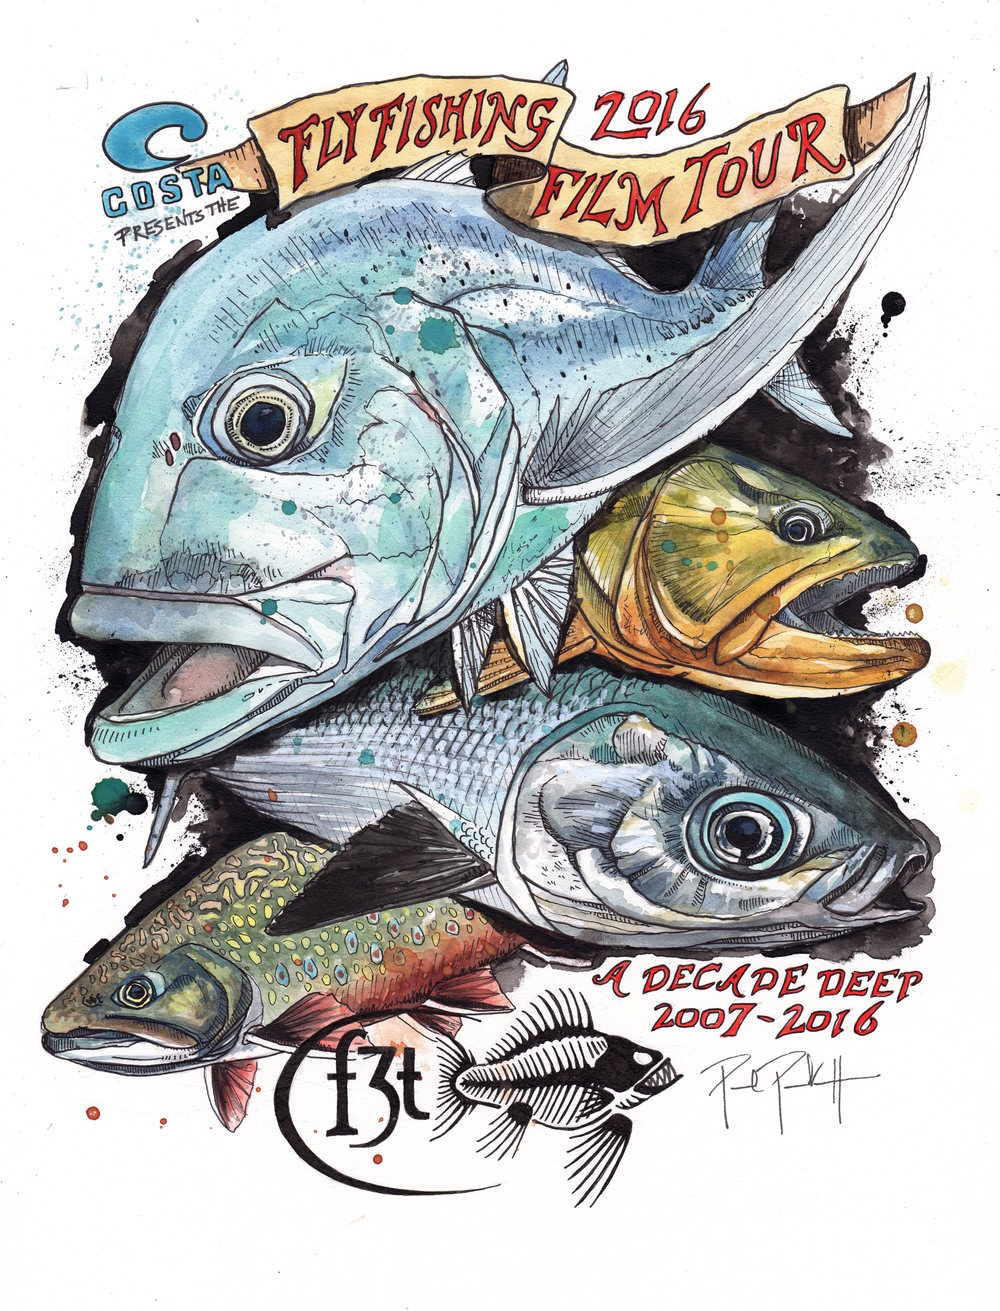 Fly Fishing Film Tour Poster 2016